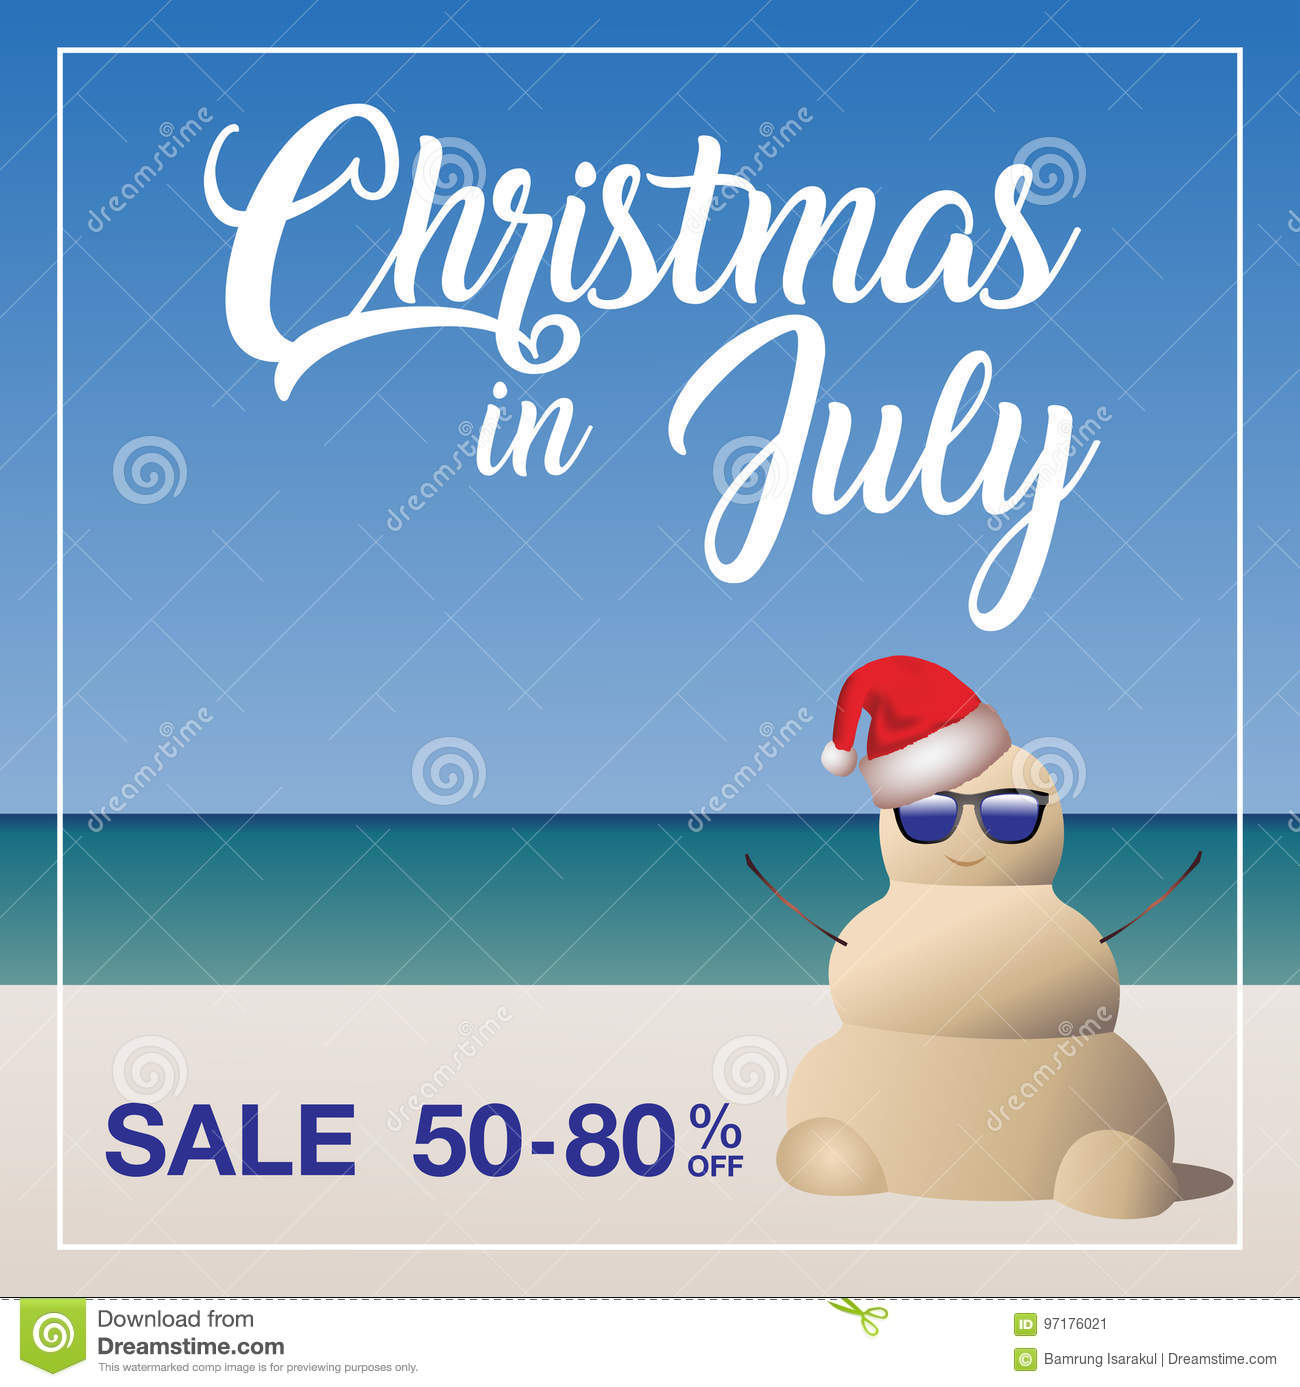 Christmas In July Free Graphics.Christmas In July Sale Marketing Template Stock Vector